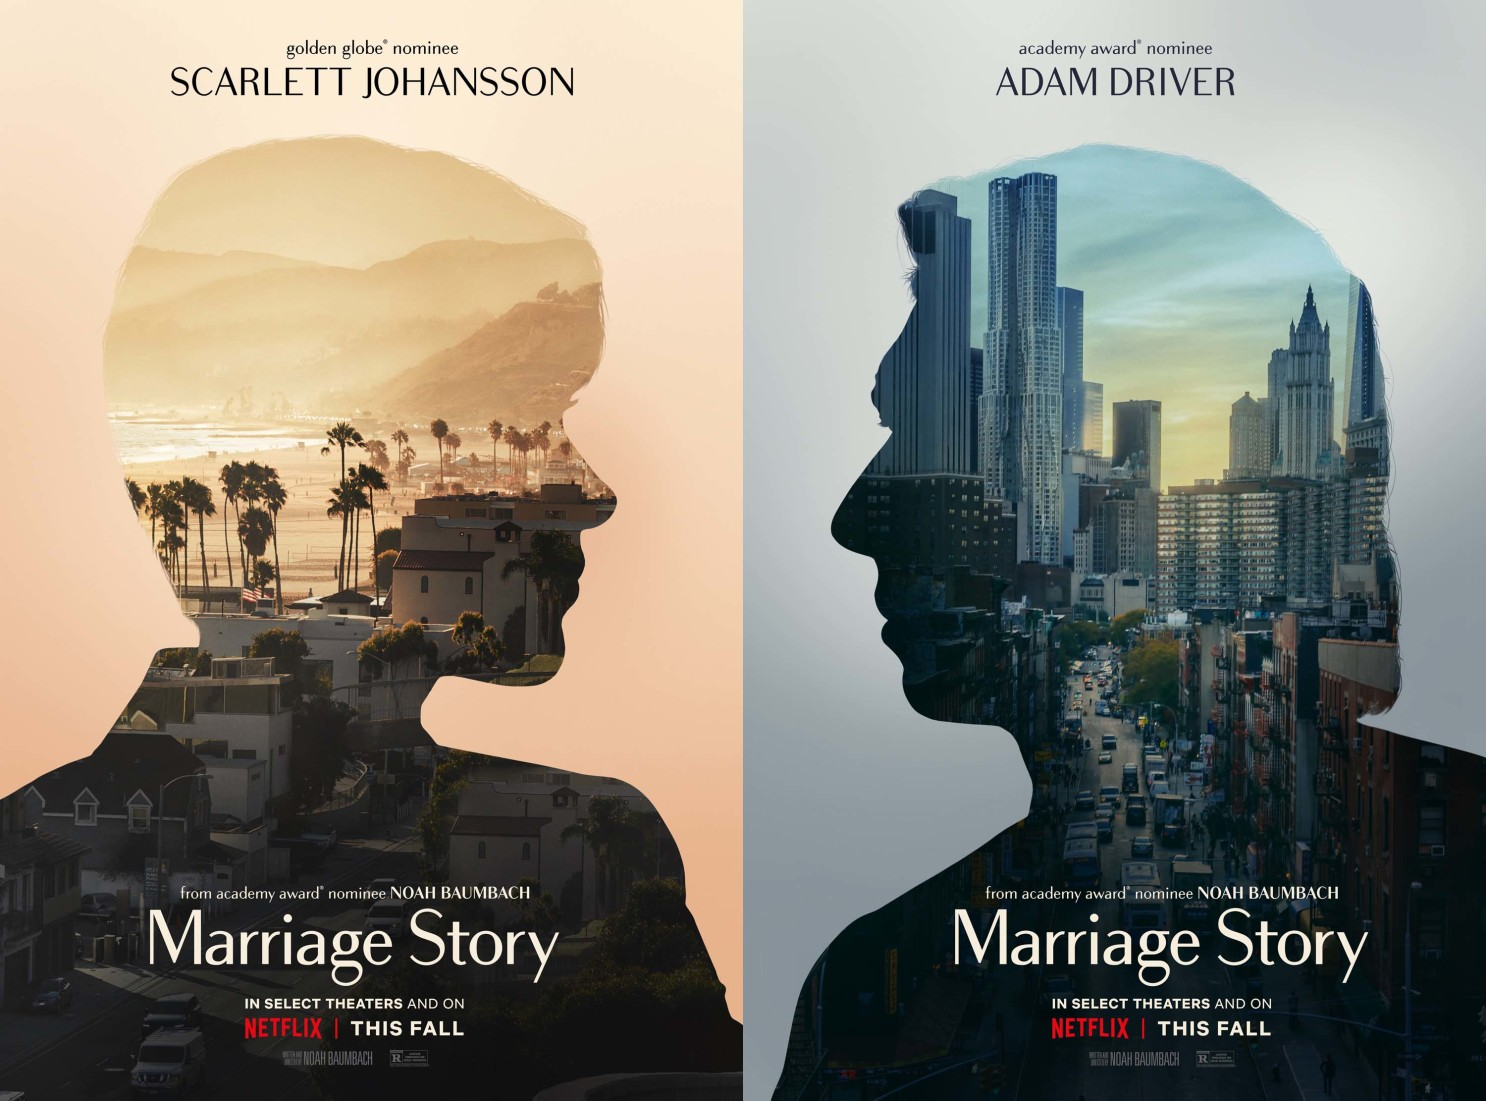 See 'Marriage Story' trailers with Scarlett Johansson, Adam Driver - Los Angeles Times